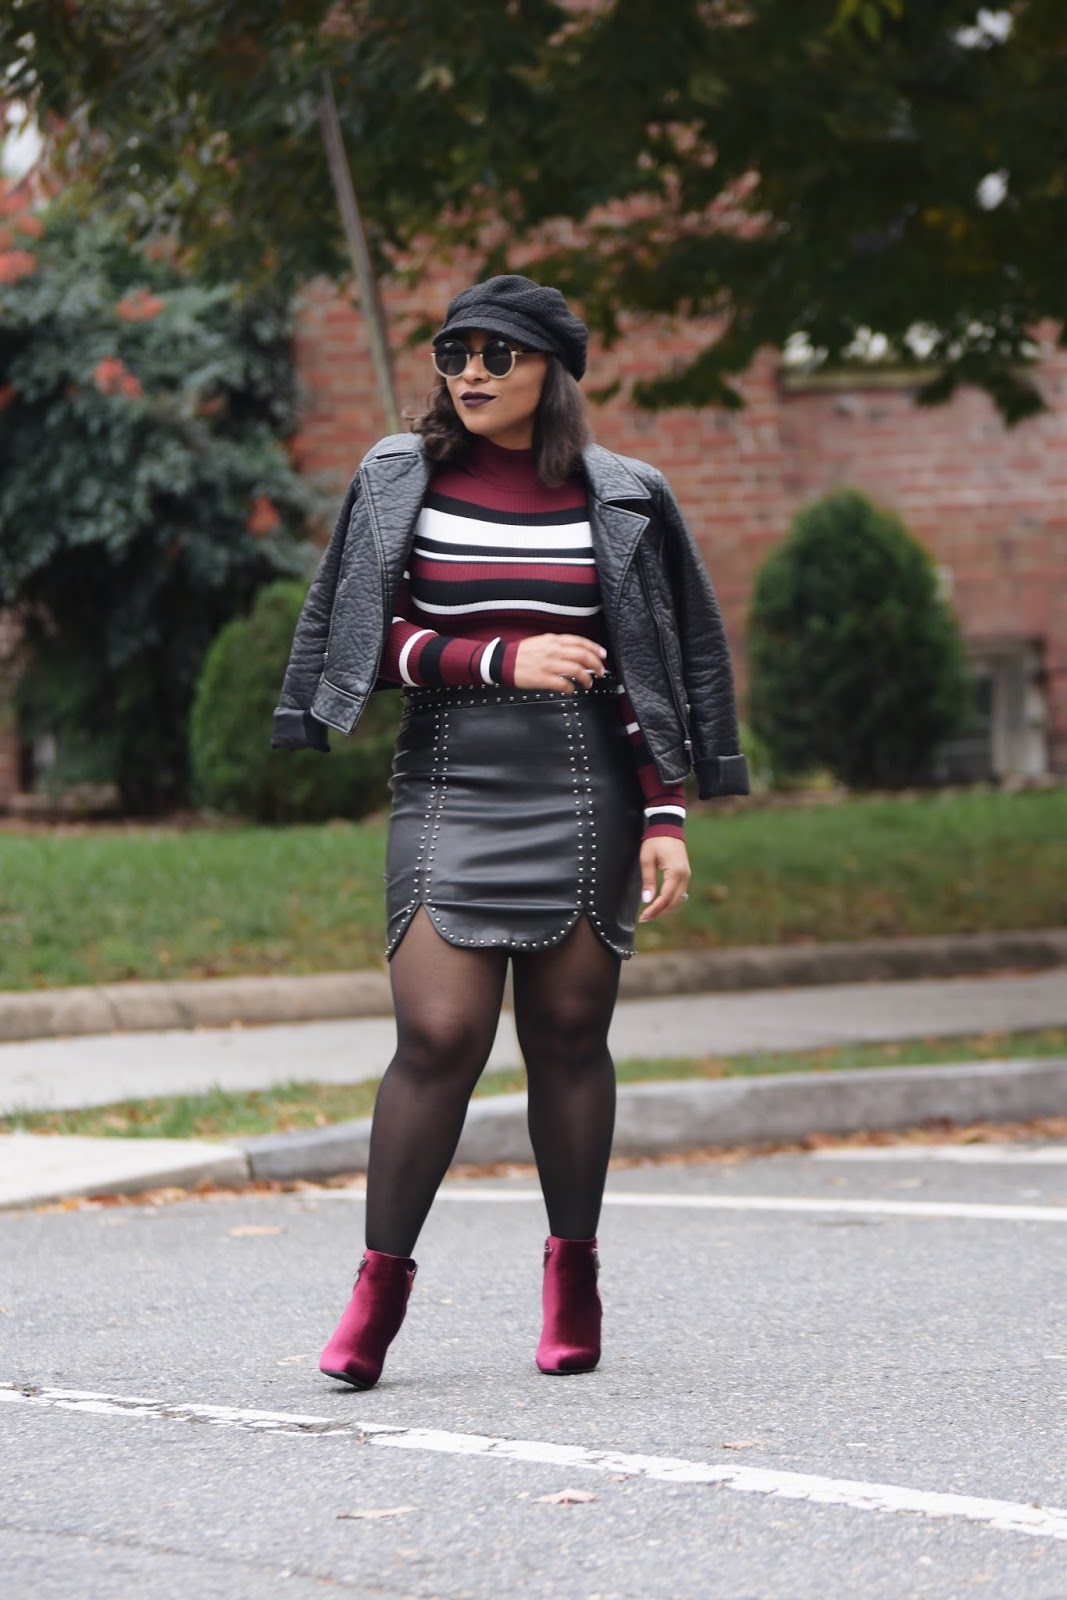 Patty's Kloset, Blogiversary, fashion blogger, fall fashion, rainbow shops, fall outfit ideas, latina bloggers, dominican blogger, newsboy hat, velvet trend, fall hat trends, fall in DC